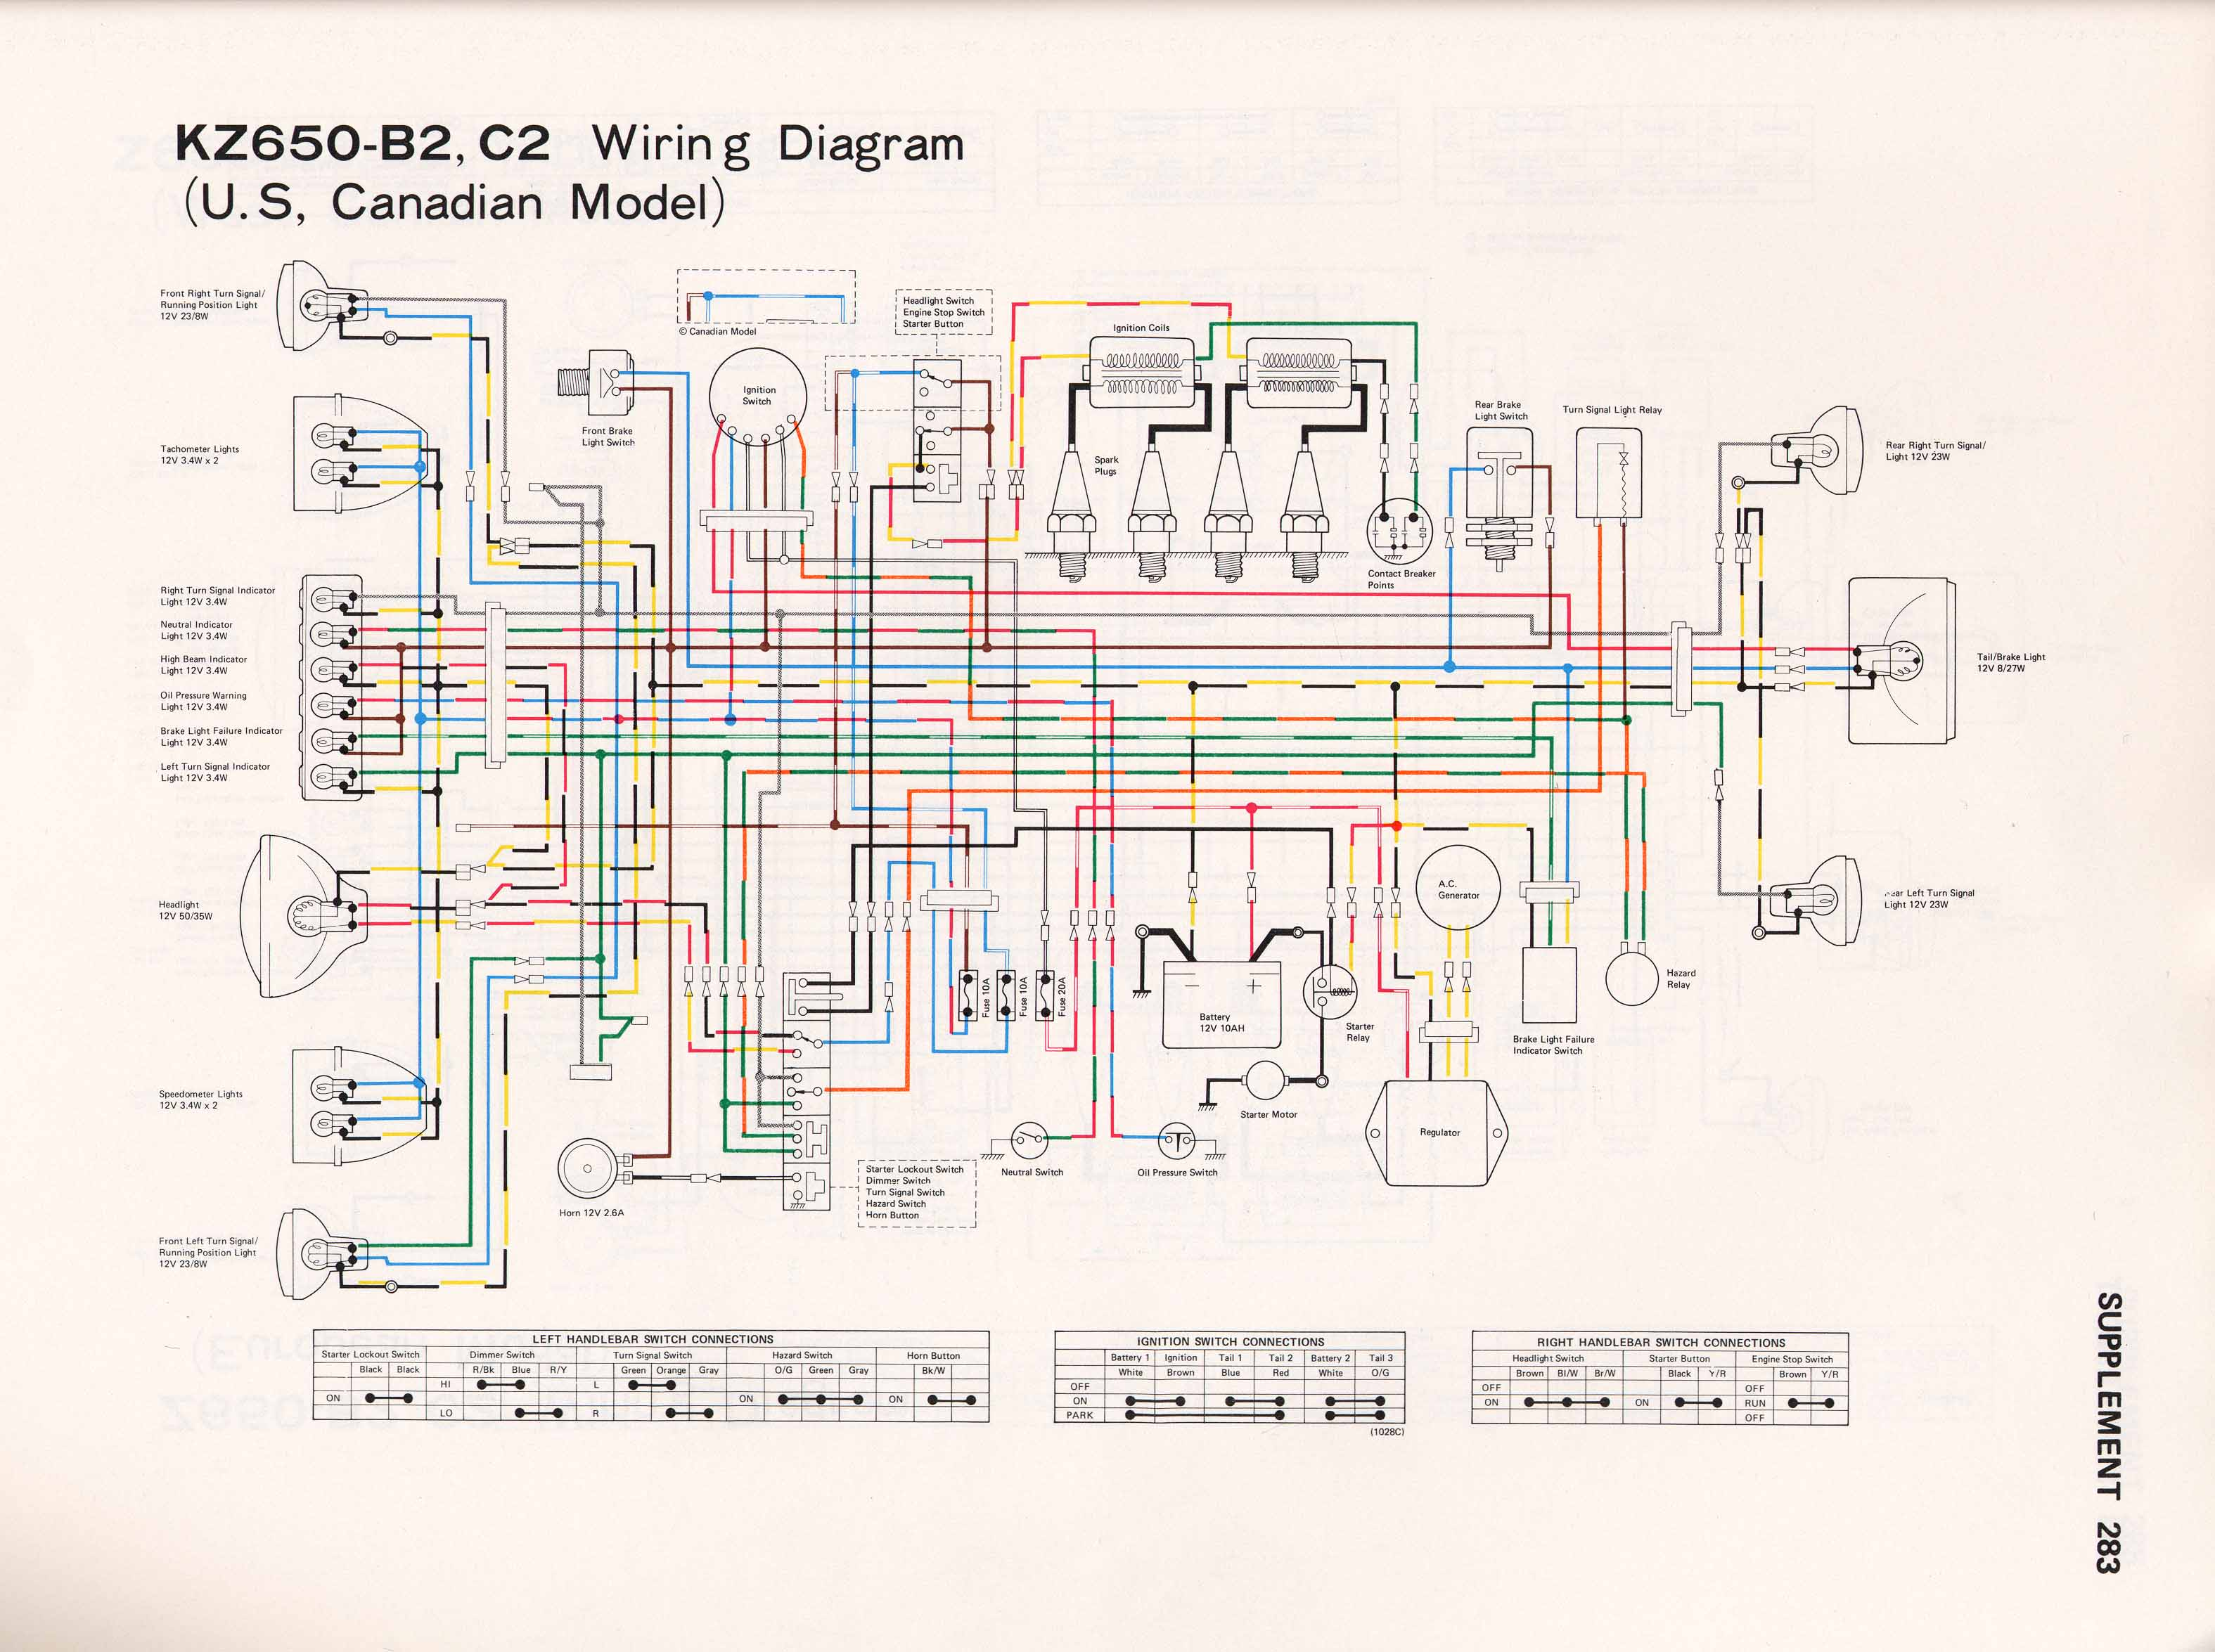 Service Owners Manuals on ktm wiring diagrams